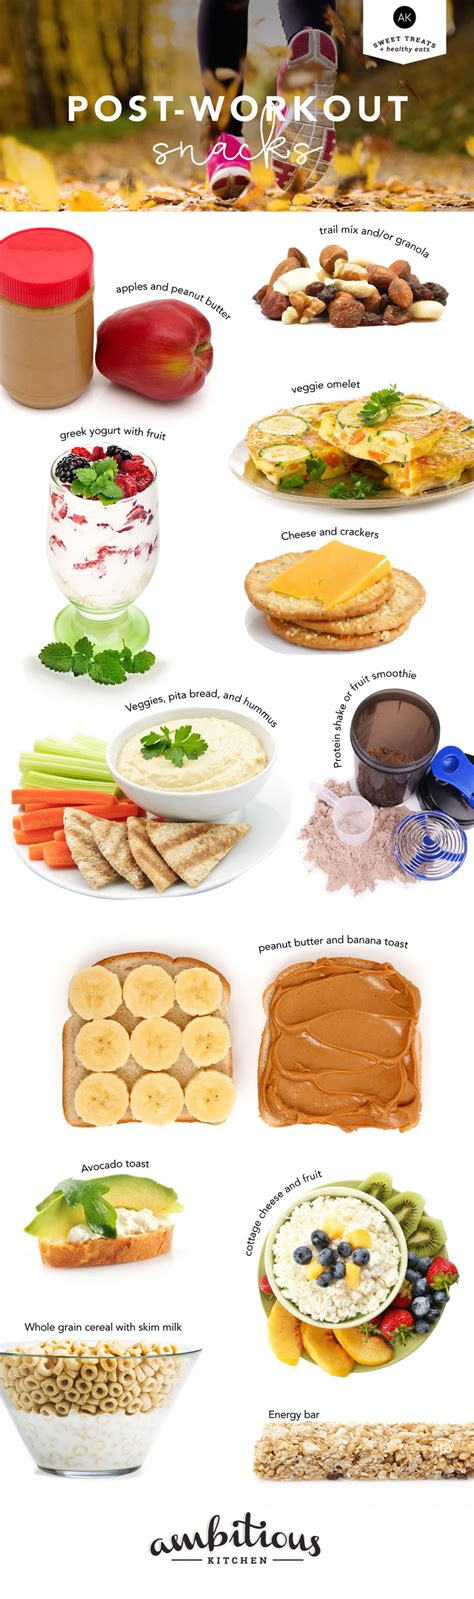 fruit 30 minutes before meal wellness wednesday 12 healthy post workout snacks when